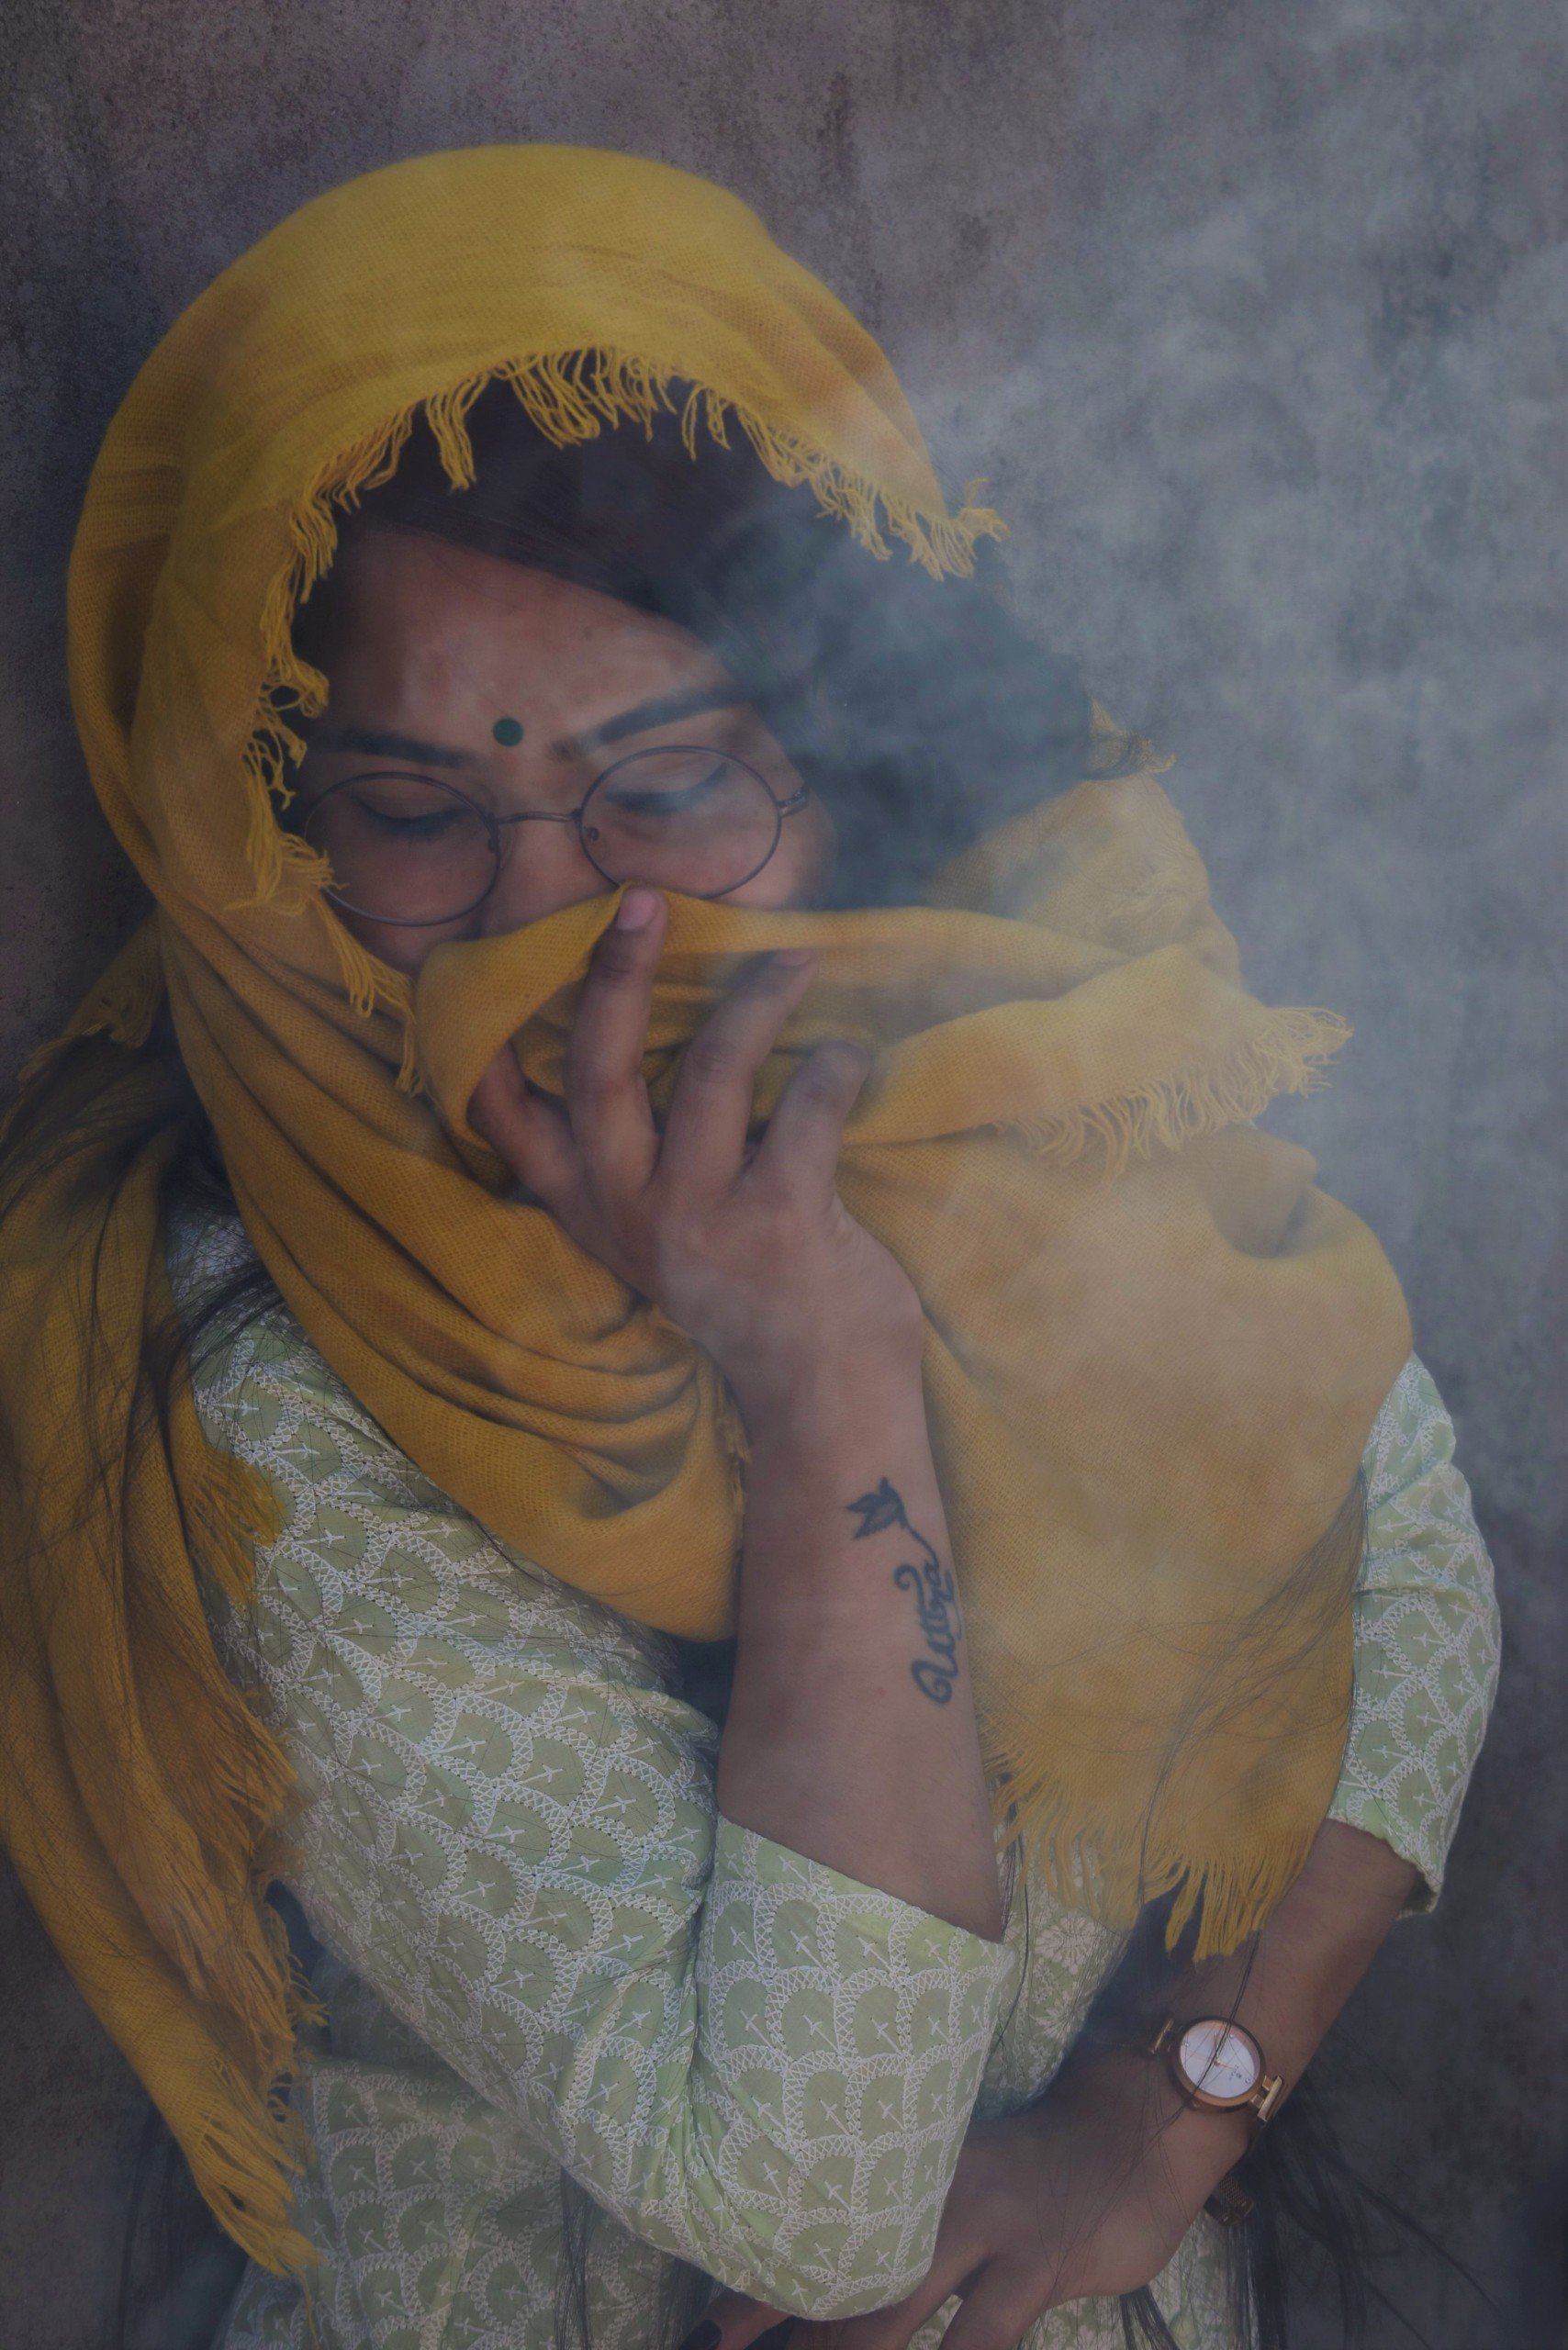 Woman covering nose from smoke